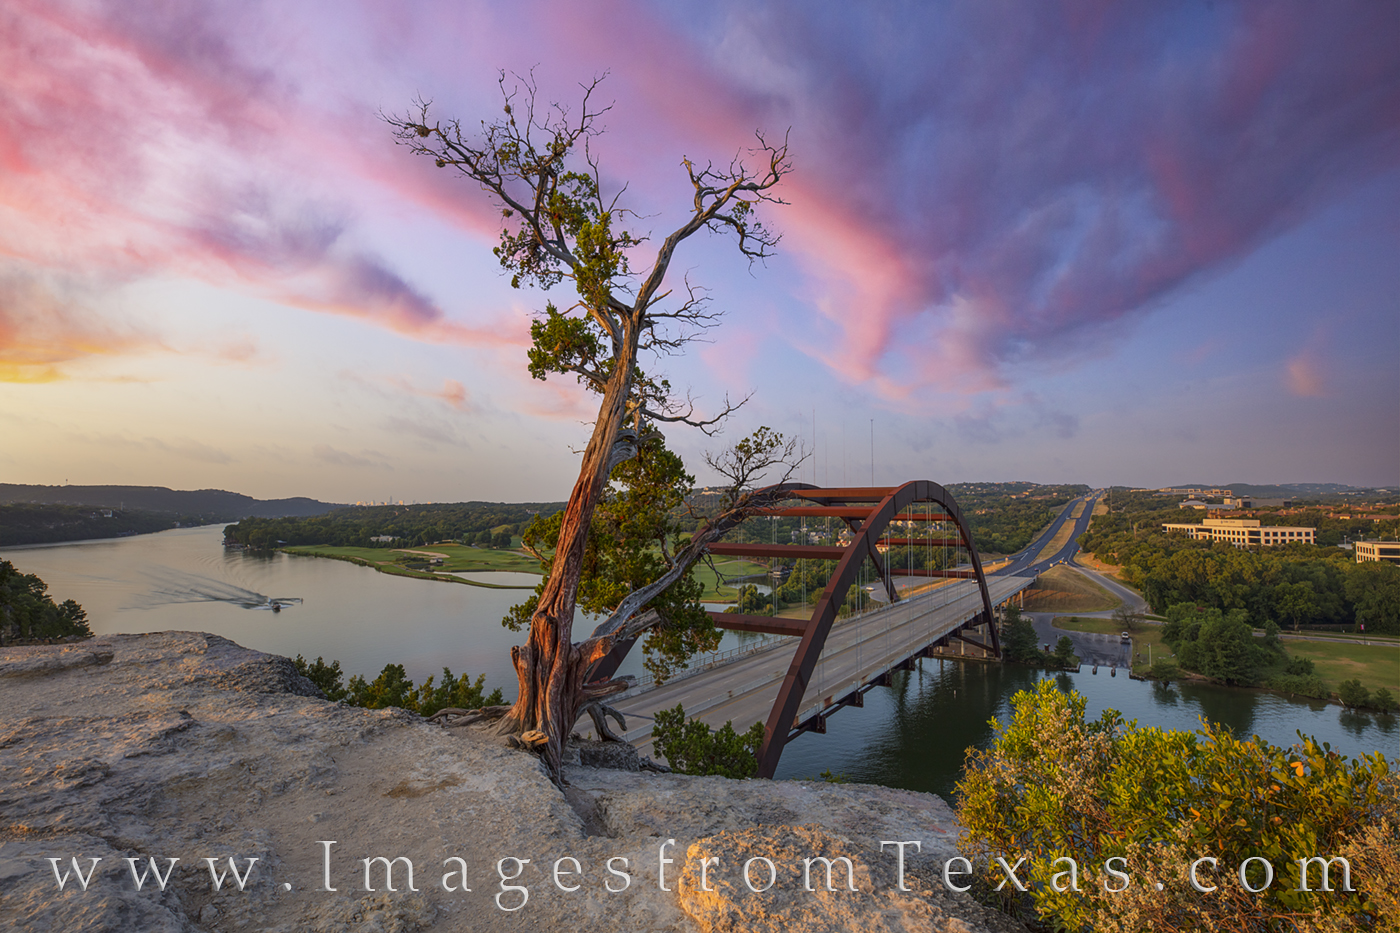 pennybacker bridge, 360 bridge, austin bridges, colorado river, sunrise, morning, austin icons, tourists, lookout, photo